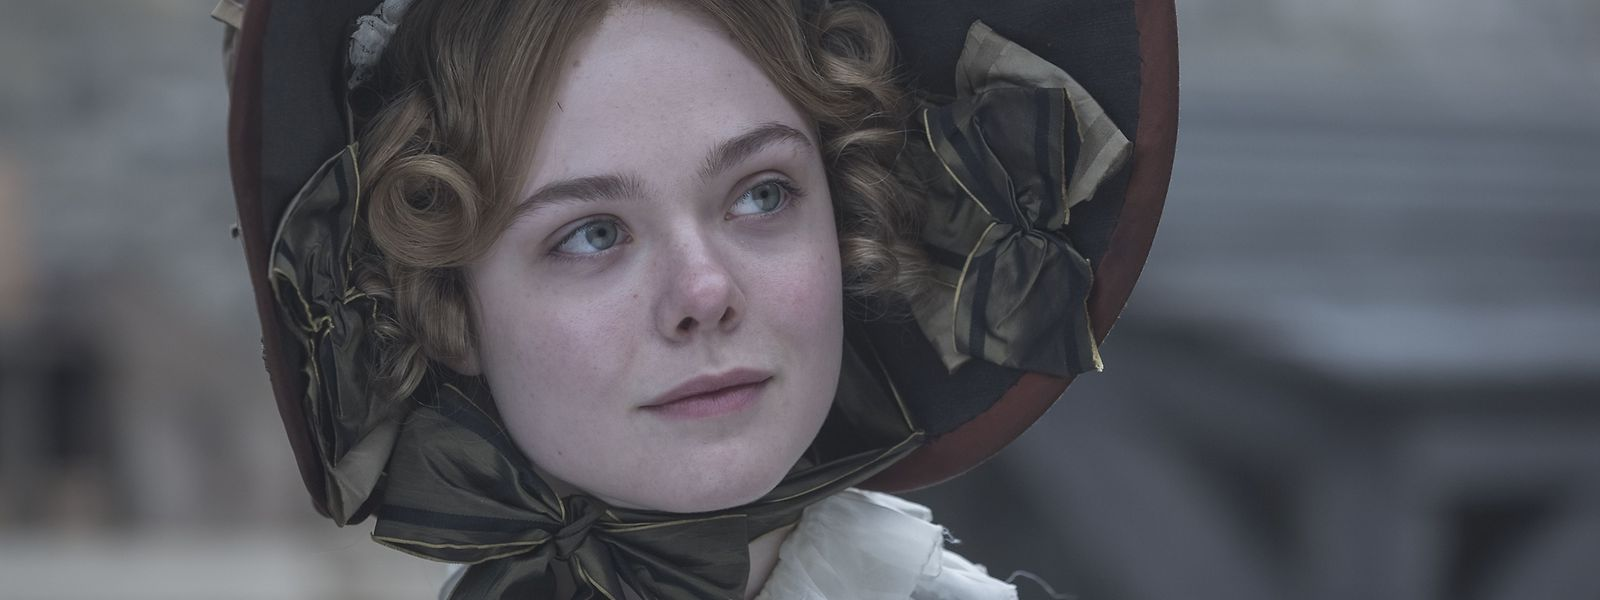 Elle Fanning in der Rolle der Mary Shelley.